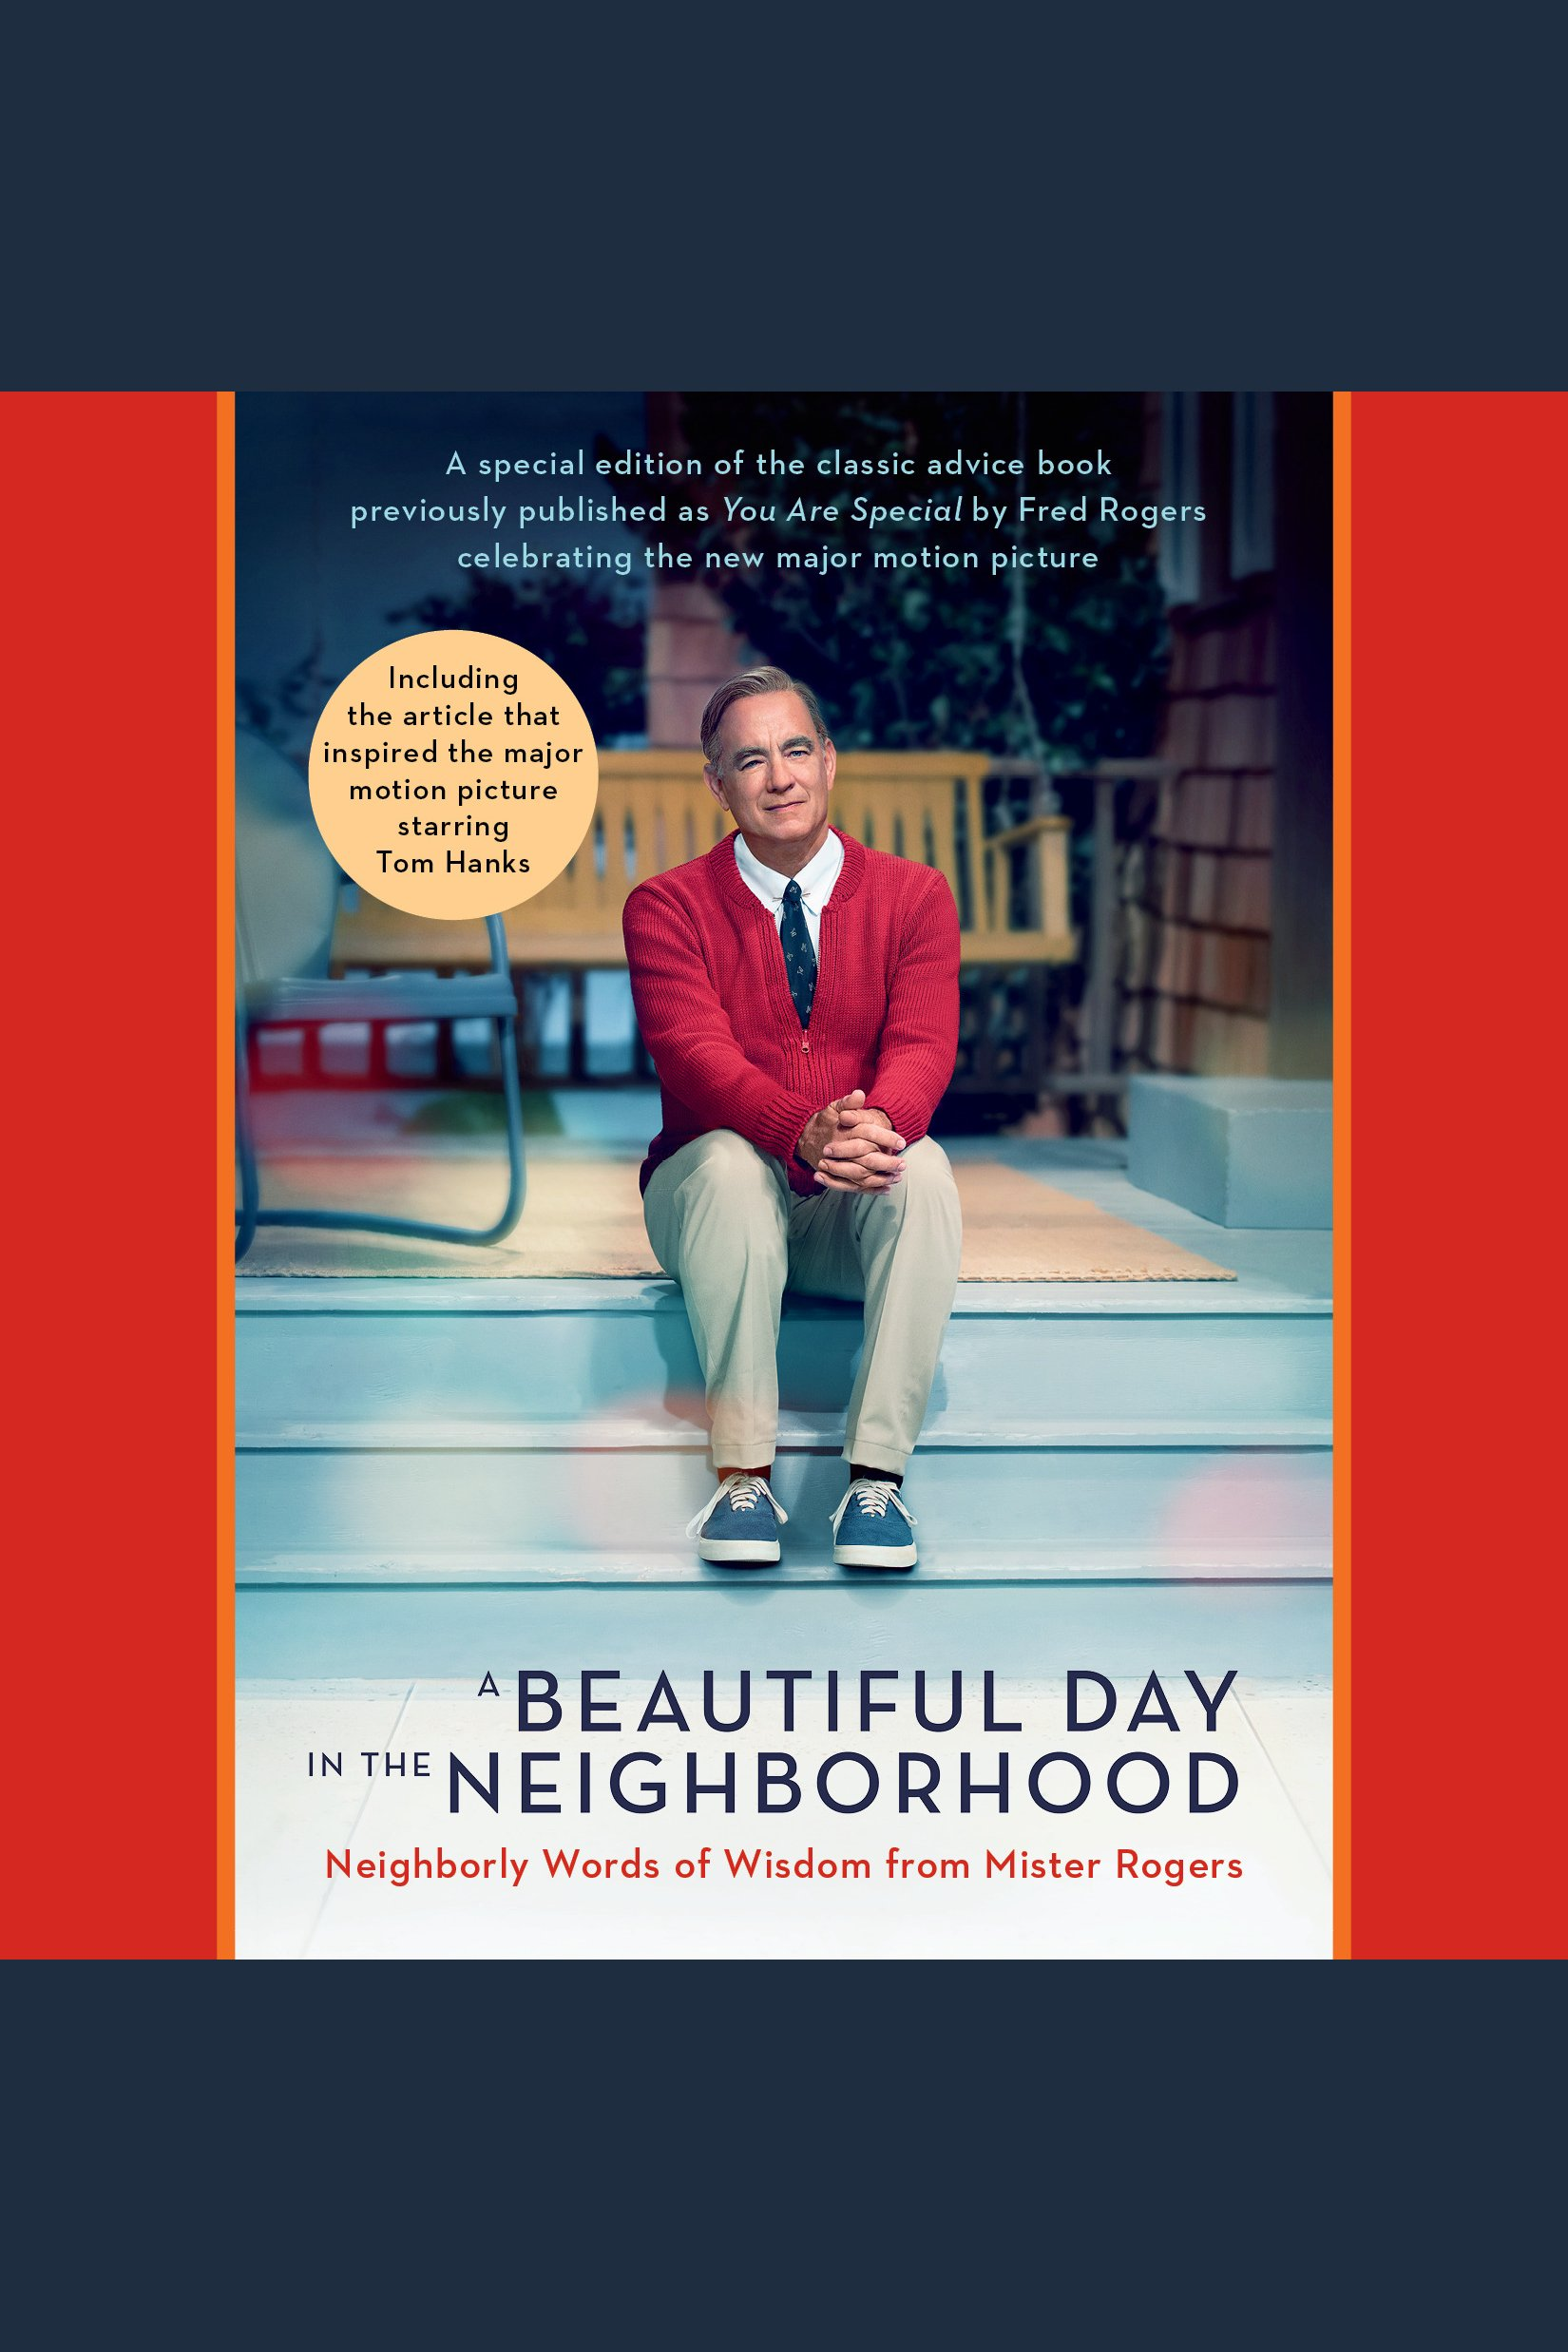 A Beautiful Day in the Neighborhood (Movie Tie-In), A Neighborly Words of Wisdom from Mister Rogers